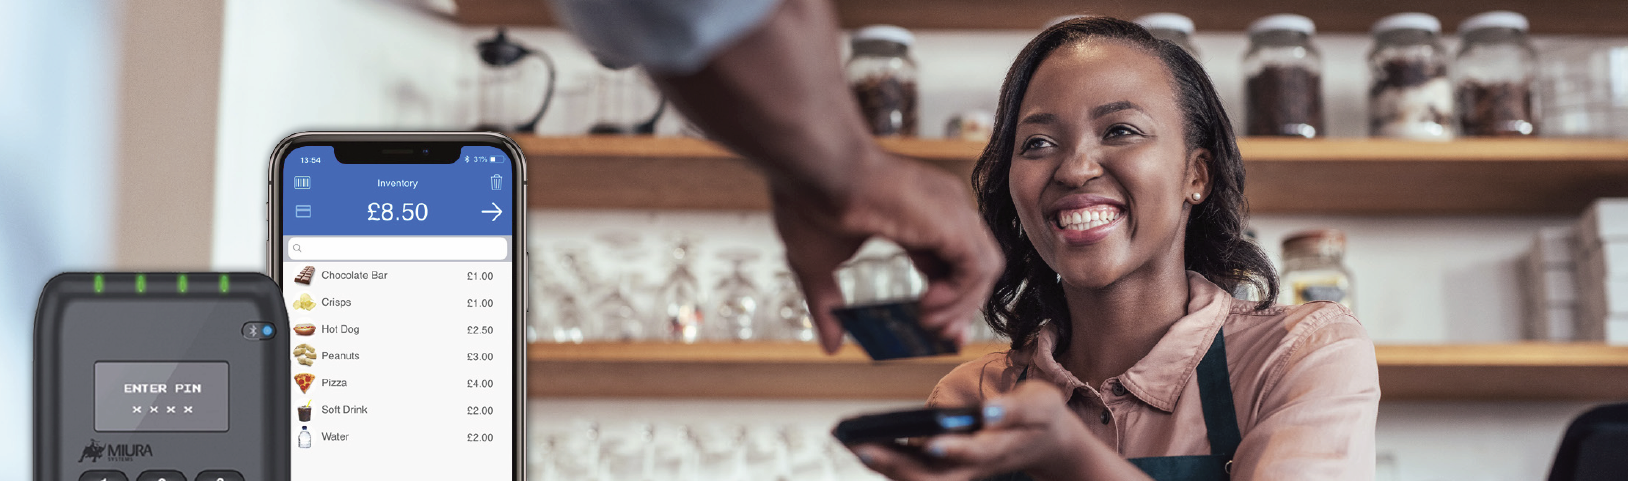 Accept payments on the go with Global Payments Mobile Pay